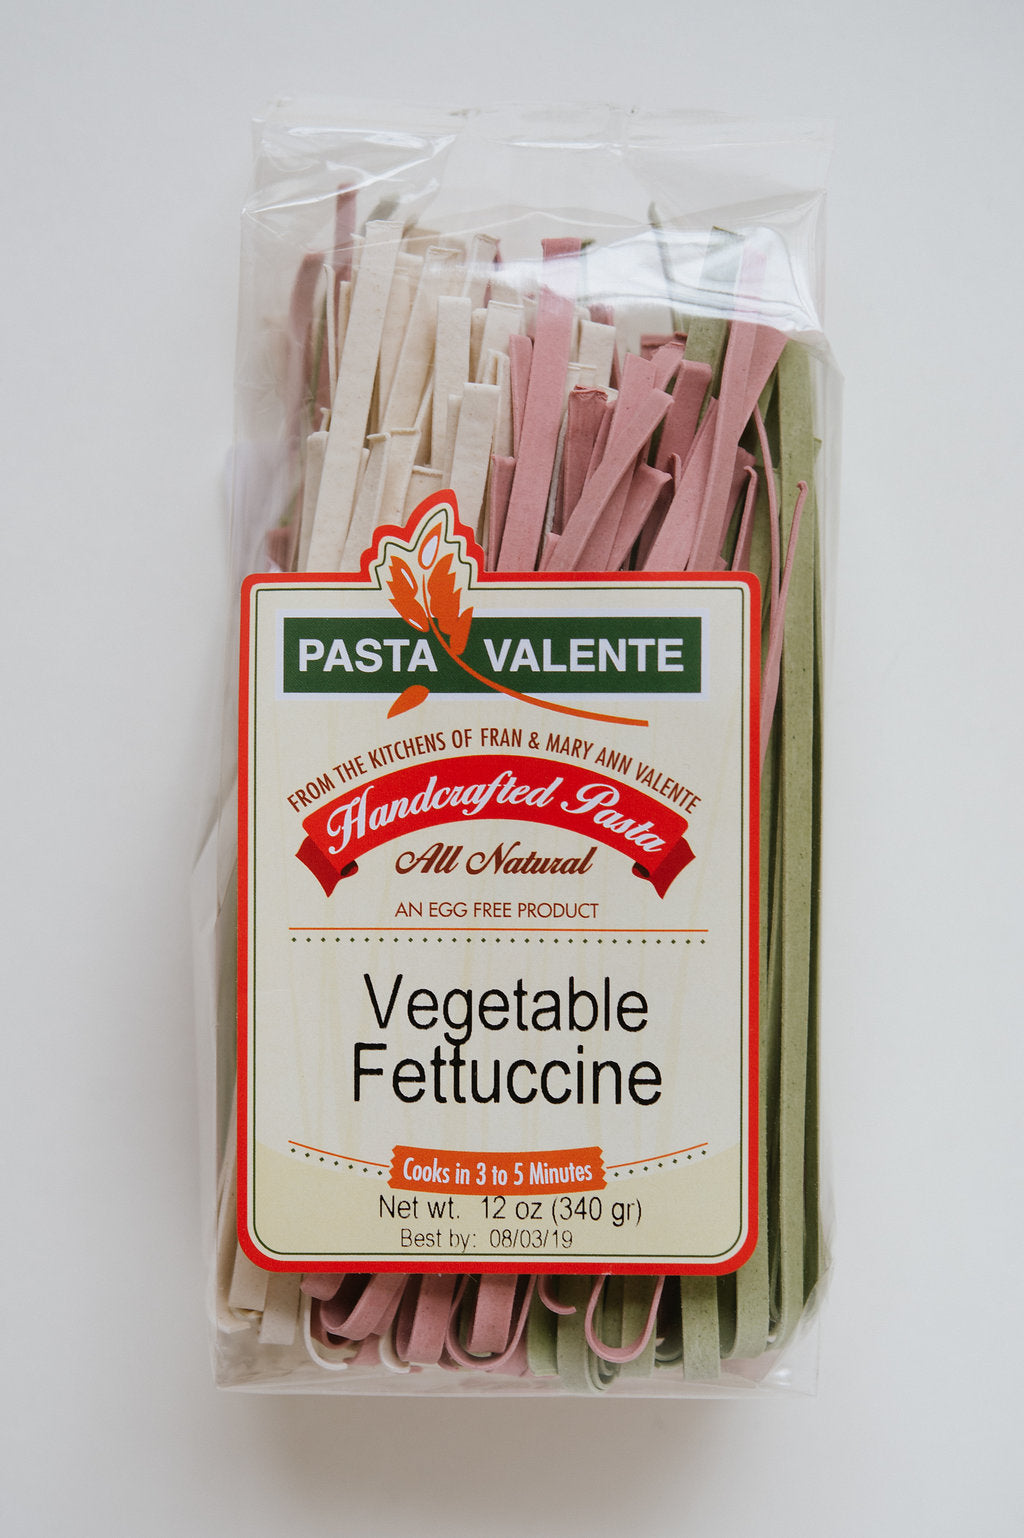 Vegetable Fettuccine